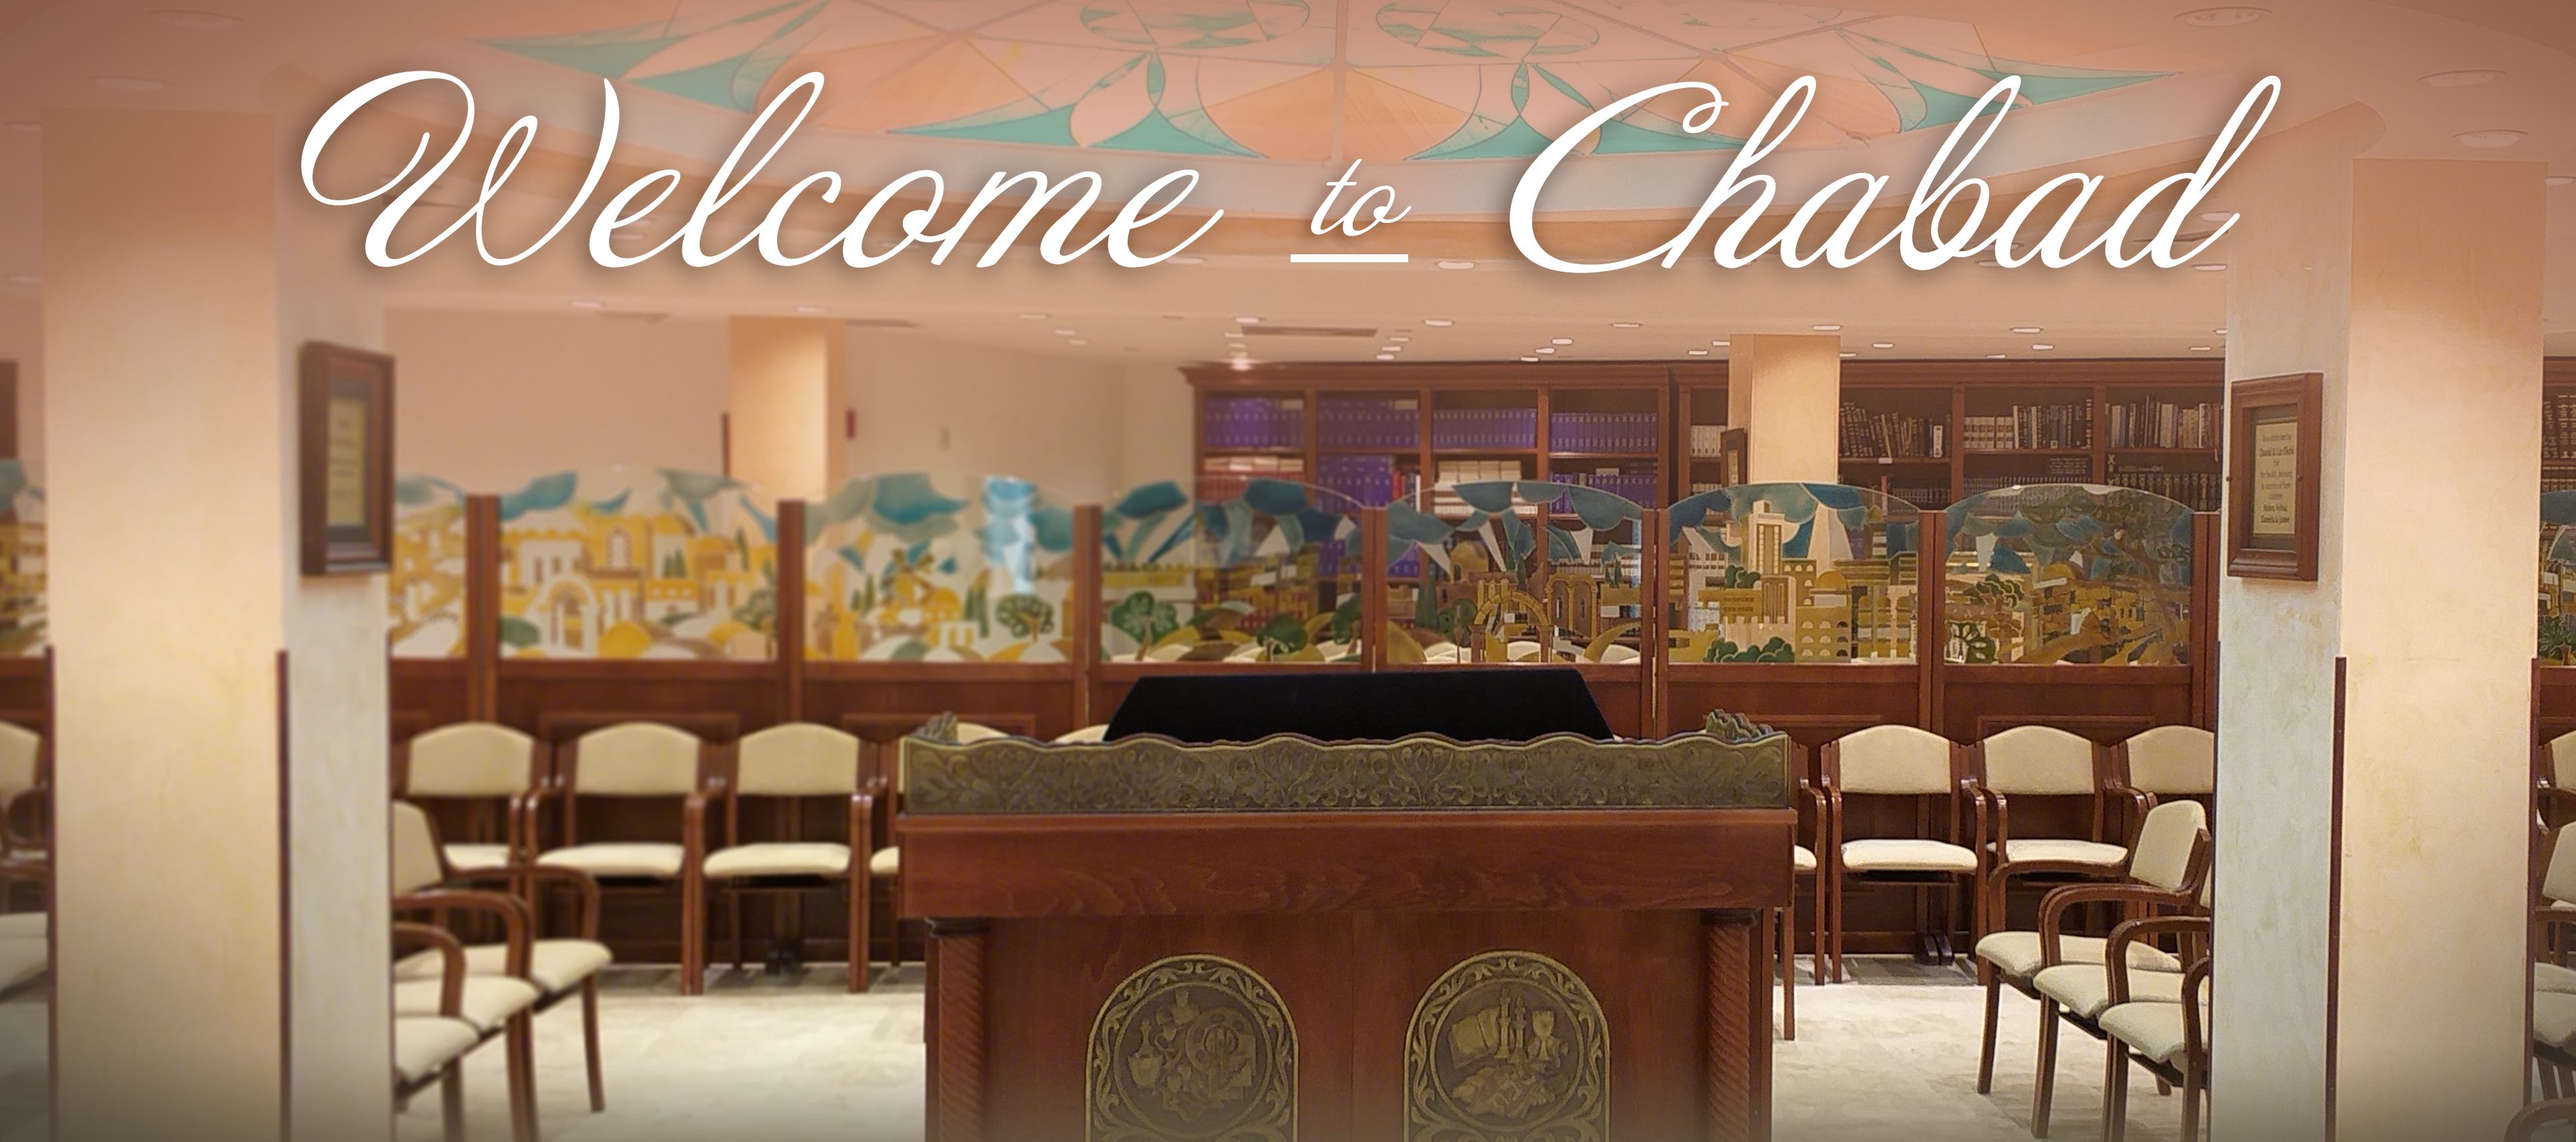 Welcome to Chabad2.jpg